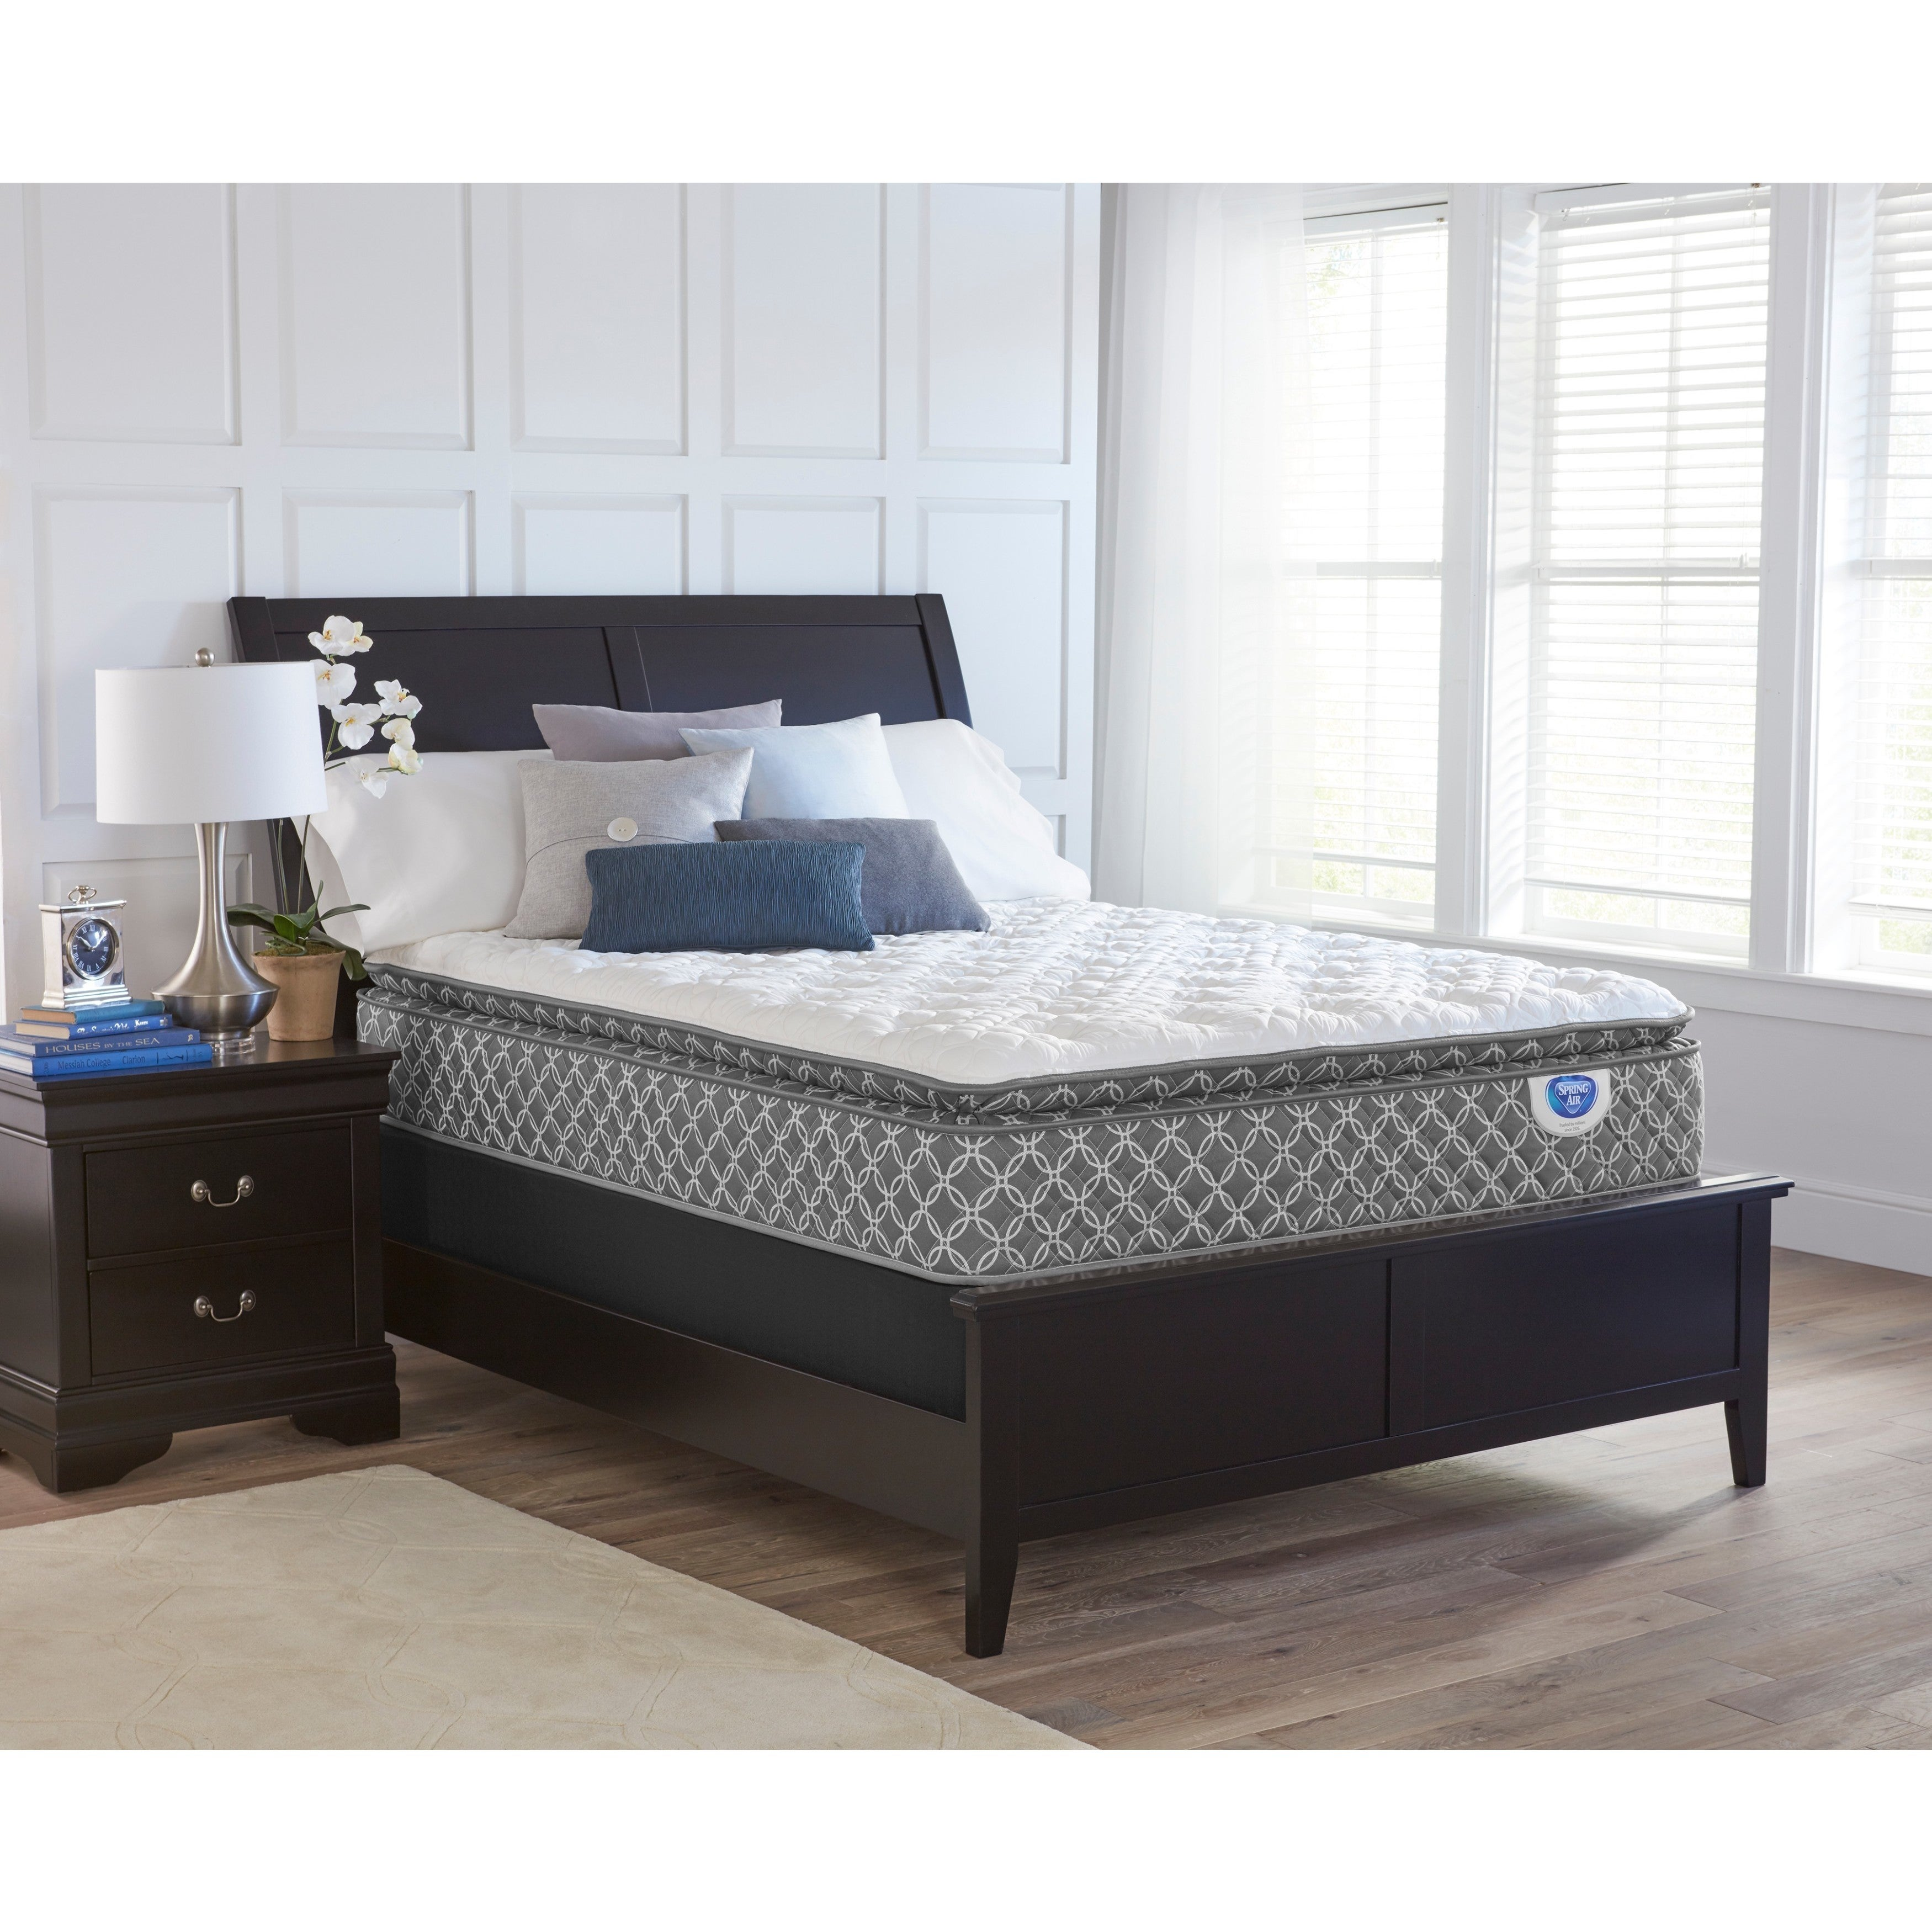 pillow luxury ruby pt simmons products number top item t sonny mattress twin gordon firm